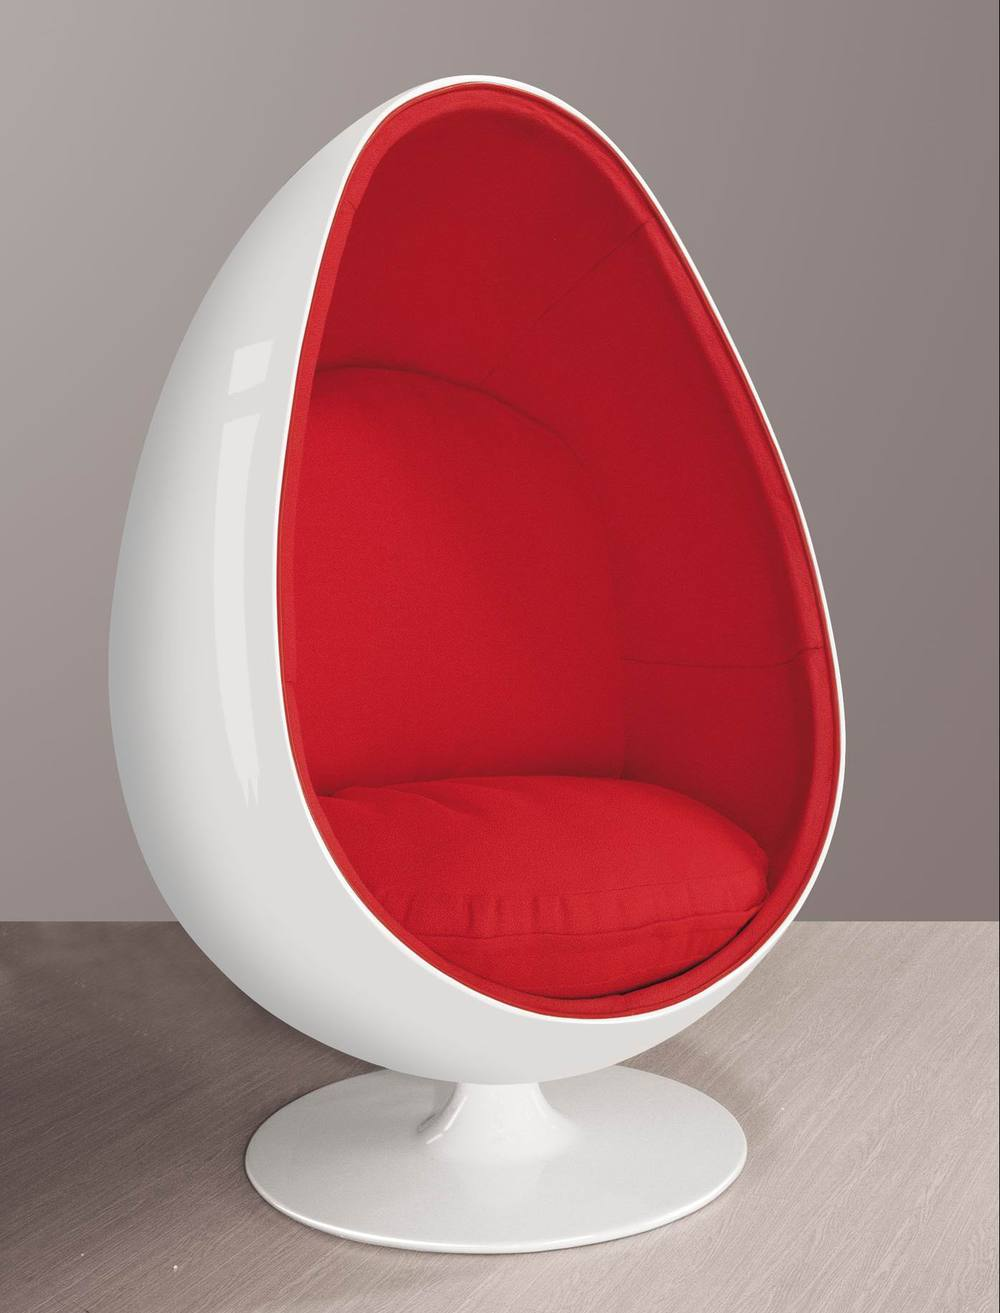 large oval ball chair ball chair ball chair big watermelon ball  - large oval ball chair ball chair ball chair big watermelon ball chair fiberglassfurniture design ideasin dining chairs from furniture on aliexpresscom